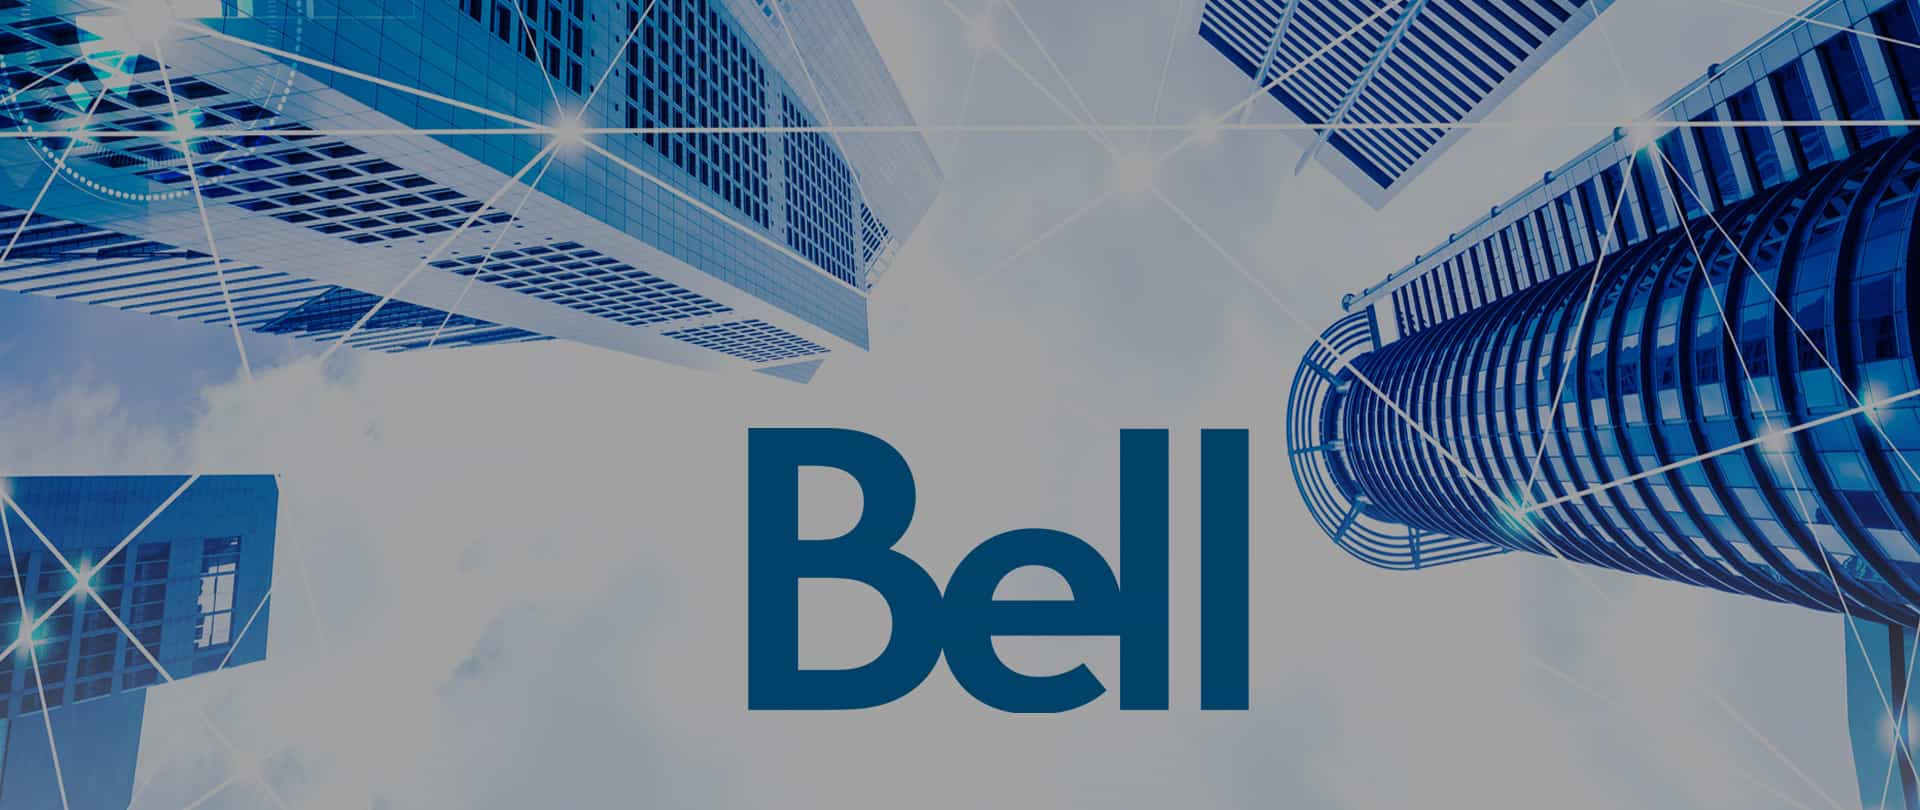 bell article banner for marketing